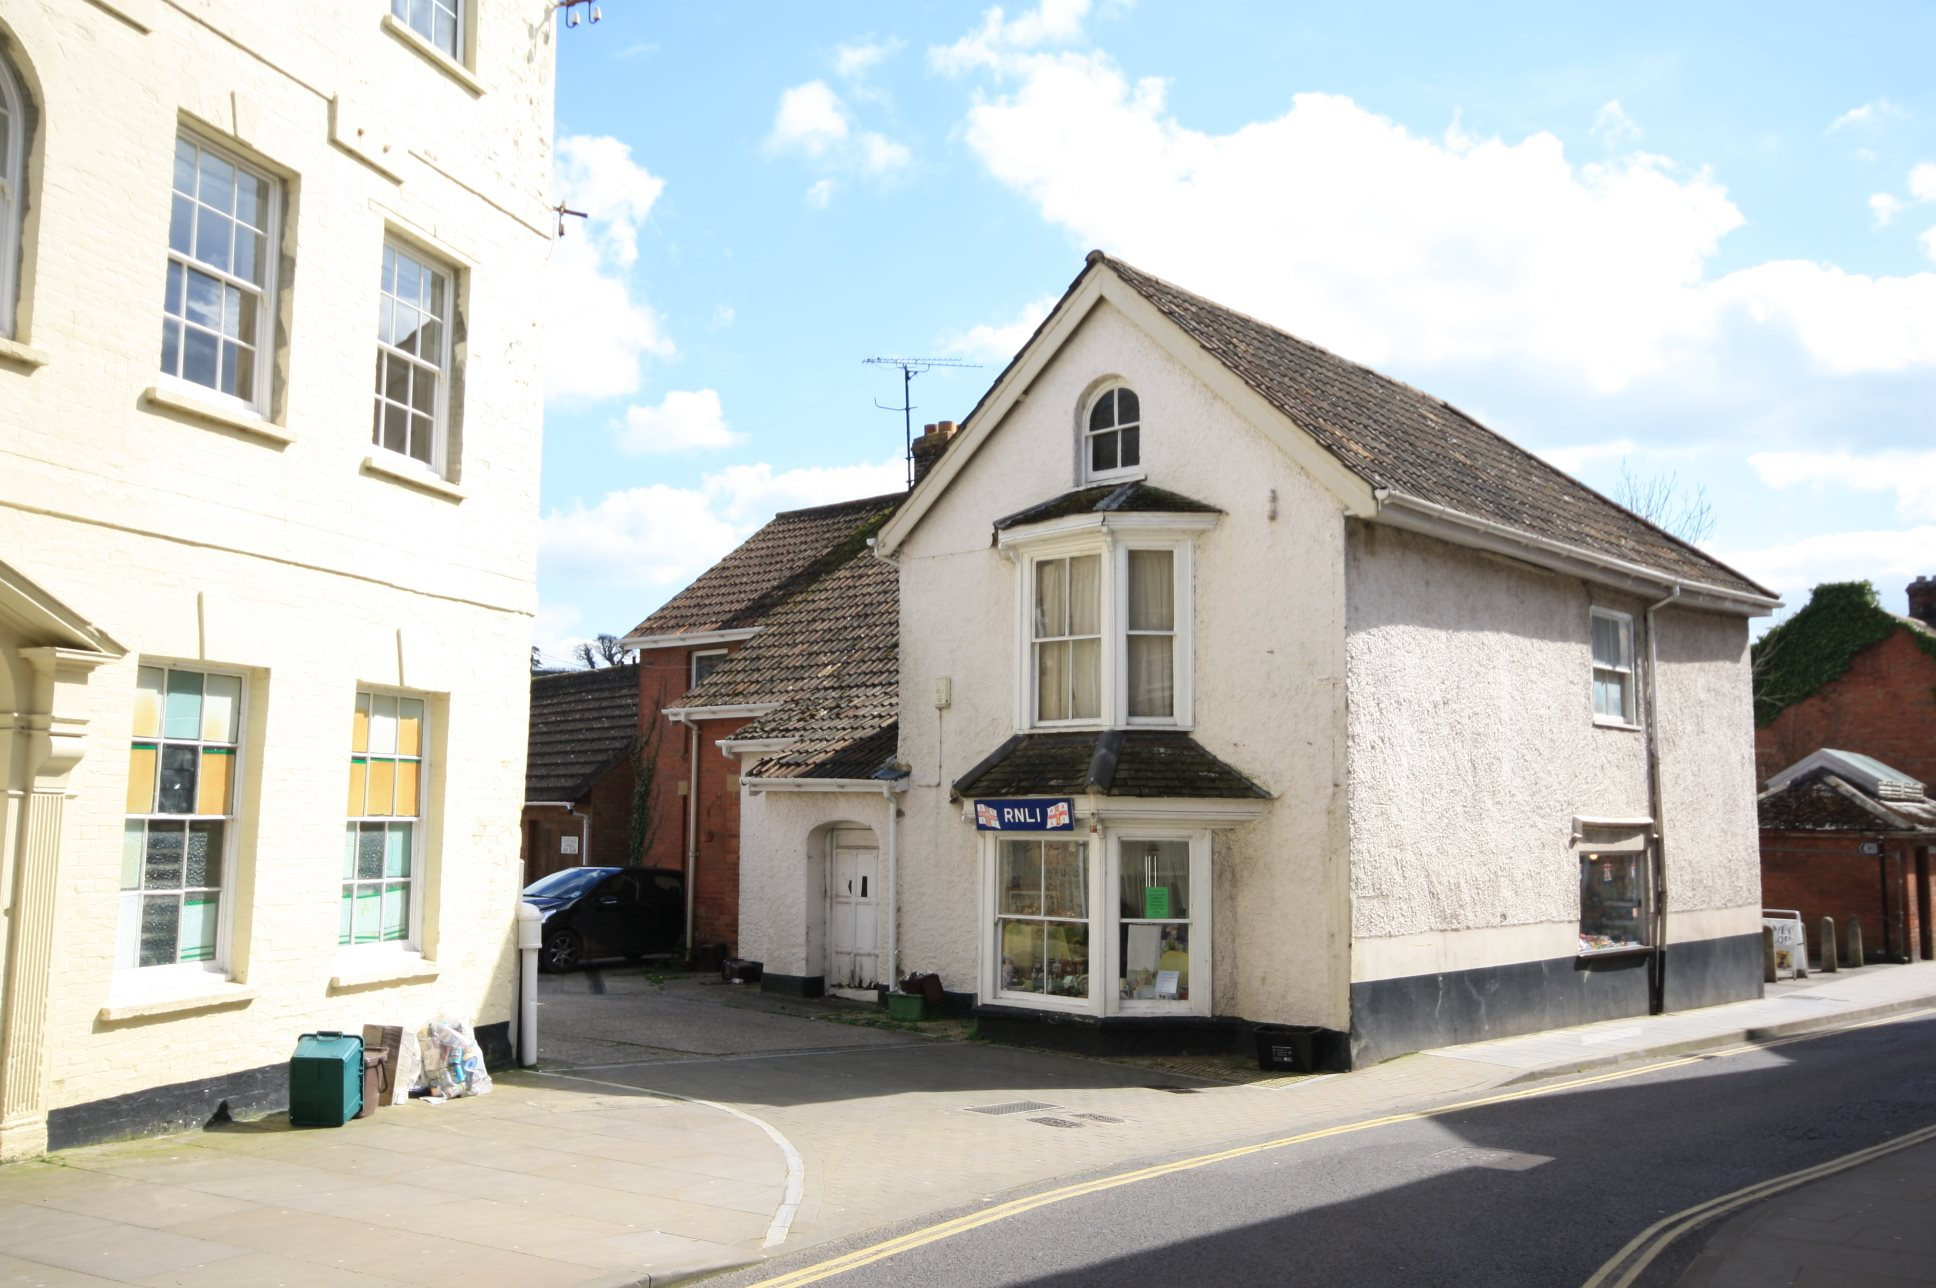 Flat 2 Swan Centre, Ditton Street, Ilminster